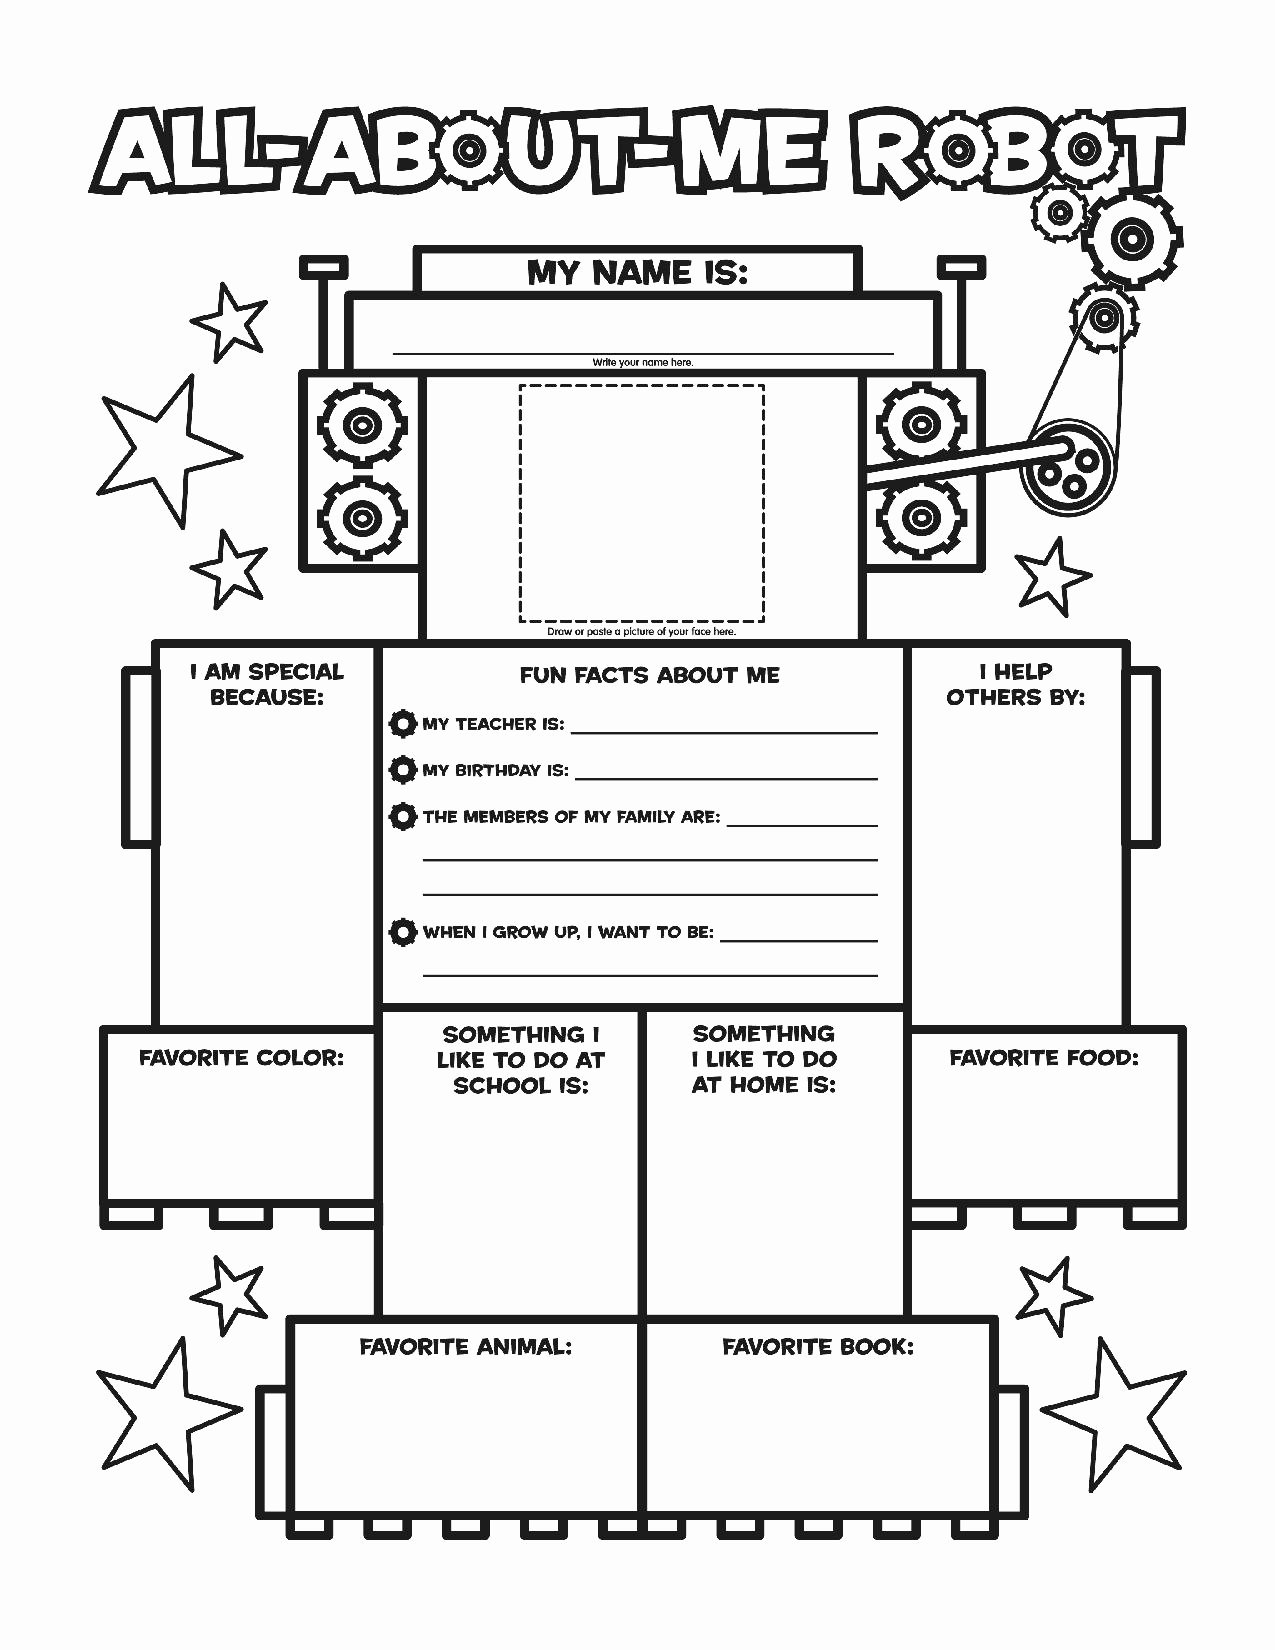 All About Me Worksheet Beautiful All About Me Worksheetstake the Pen